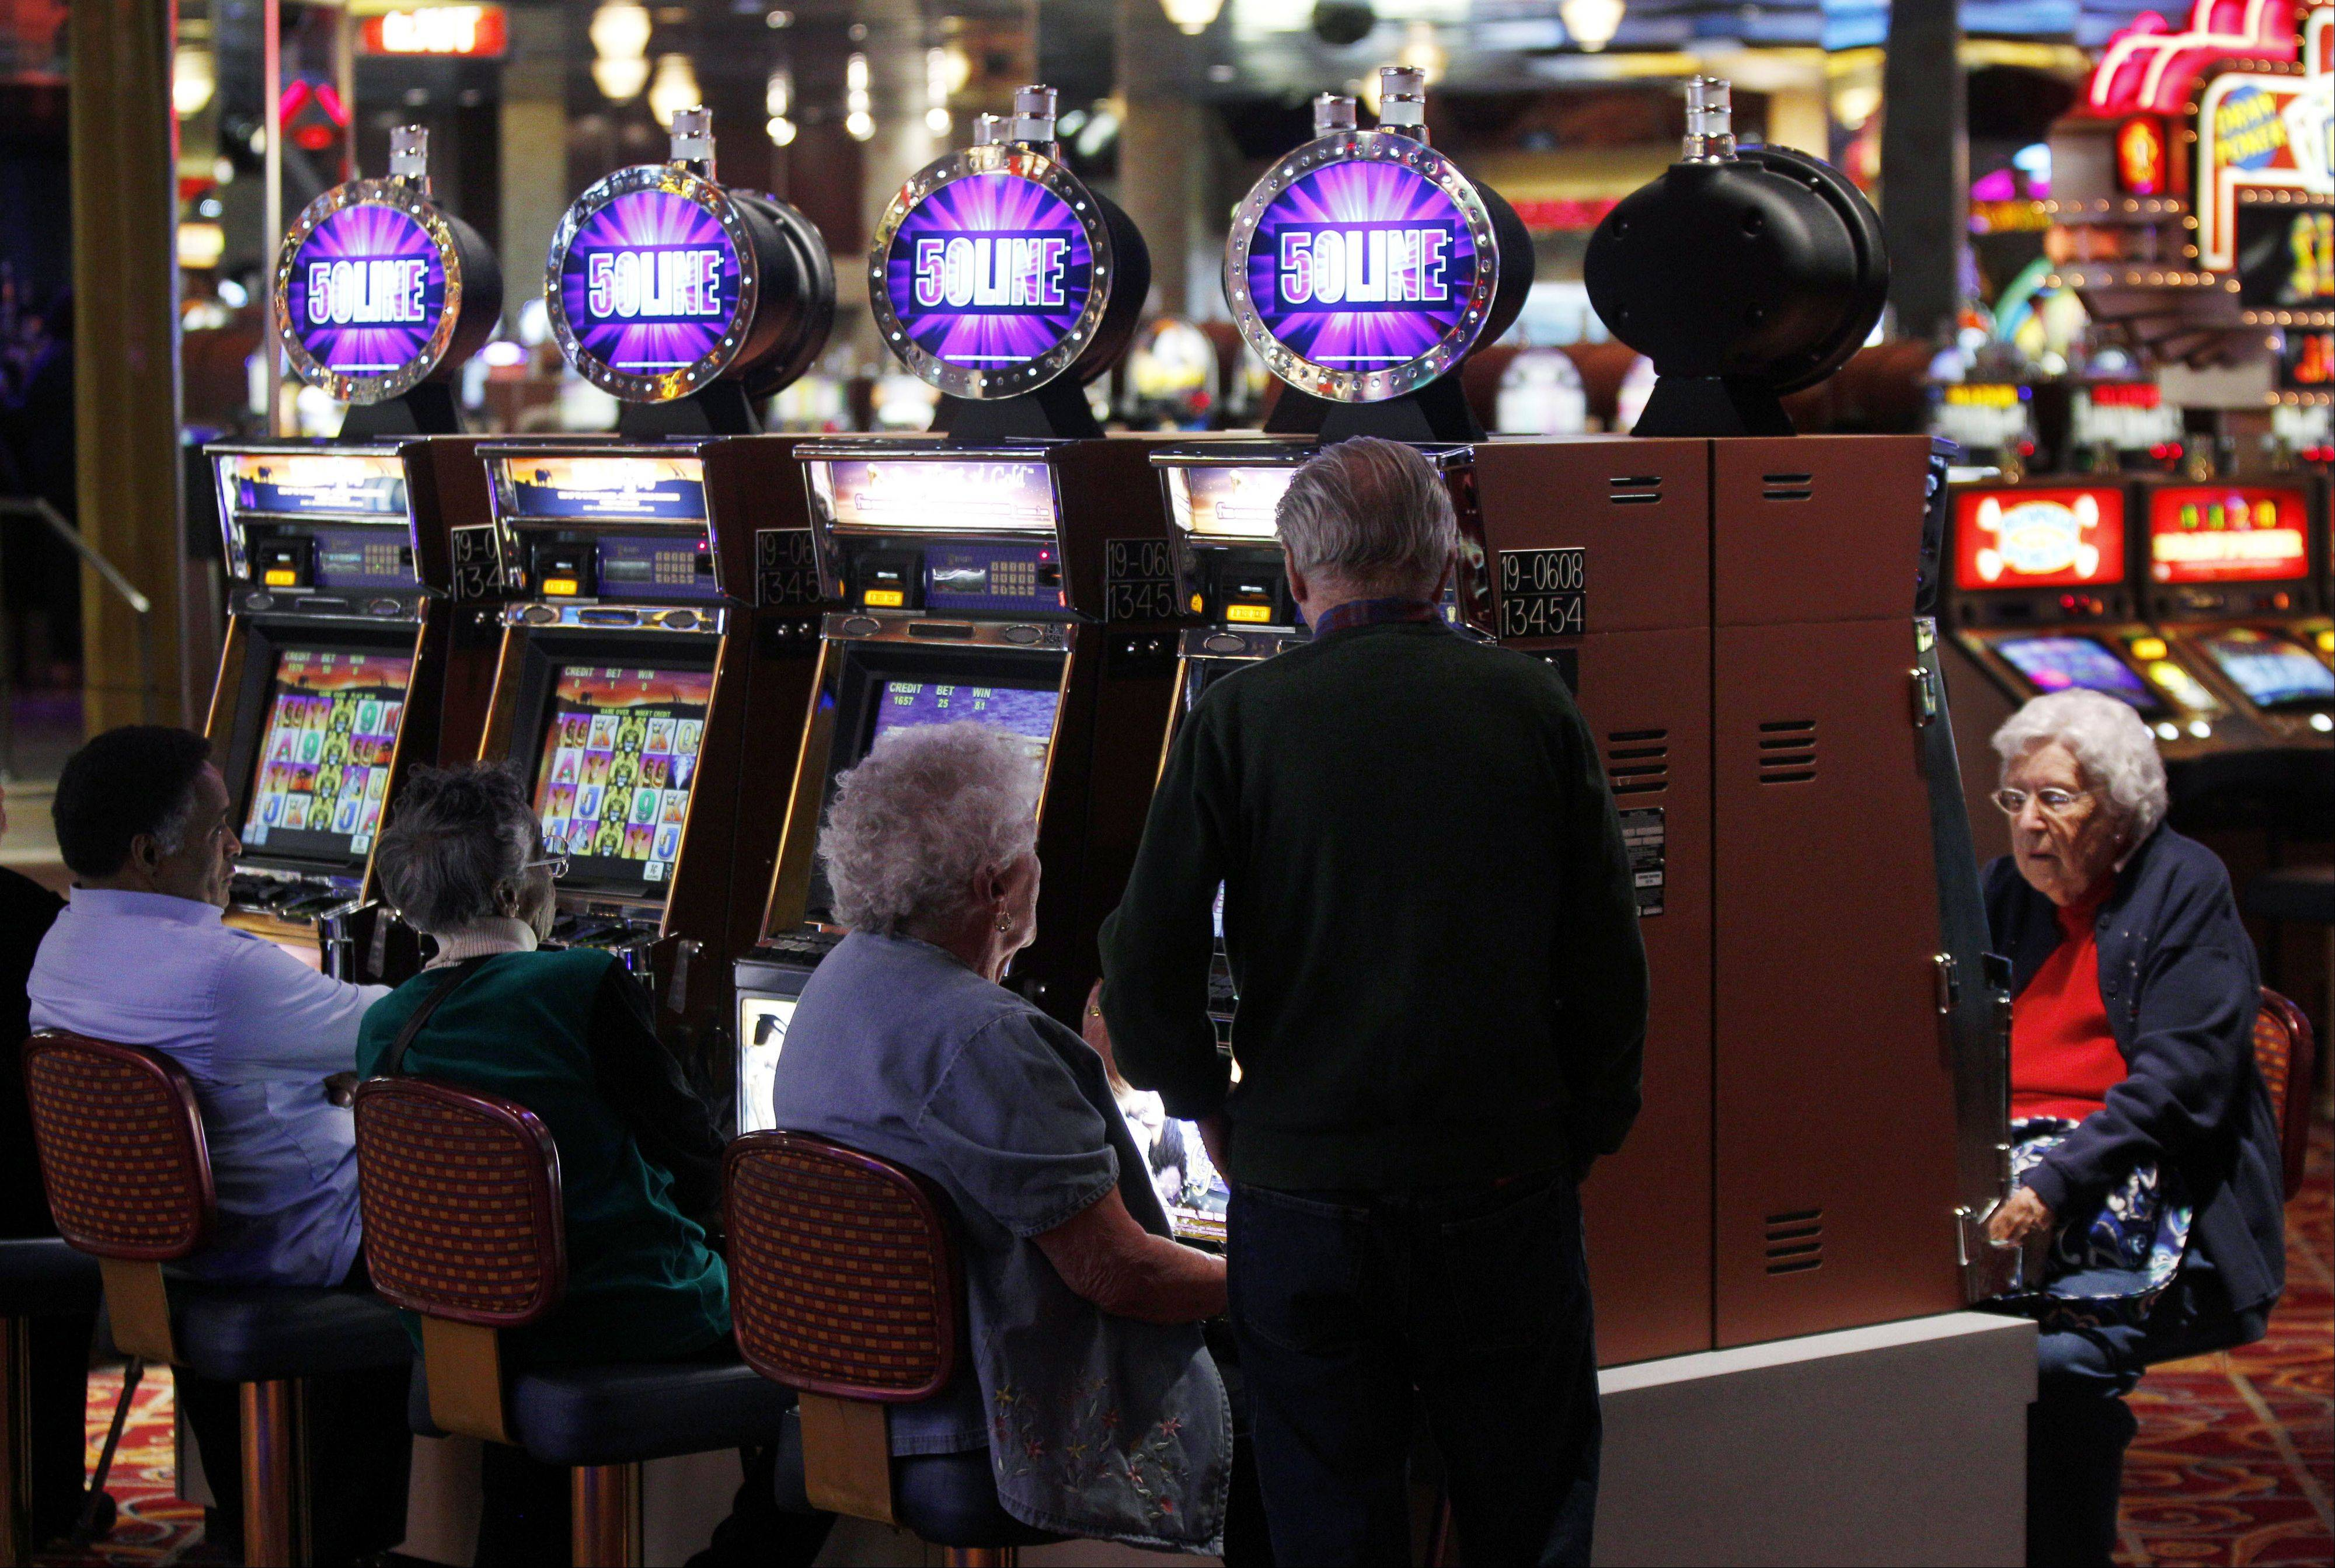 Atlantic City, the erstwhile East Coast gambling mecca, is on an epic losing streak; over the past six years, competitive and economic forces have crushed the local casino economy, driving revenue down more than 40 percent.